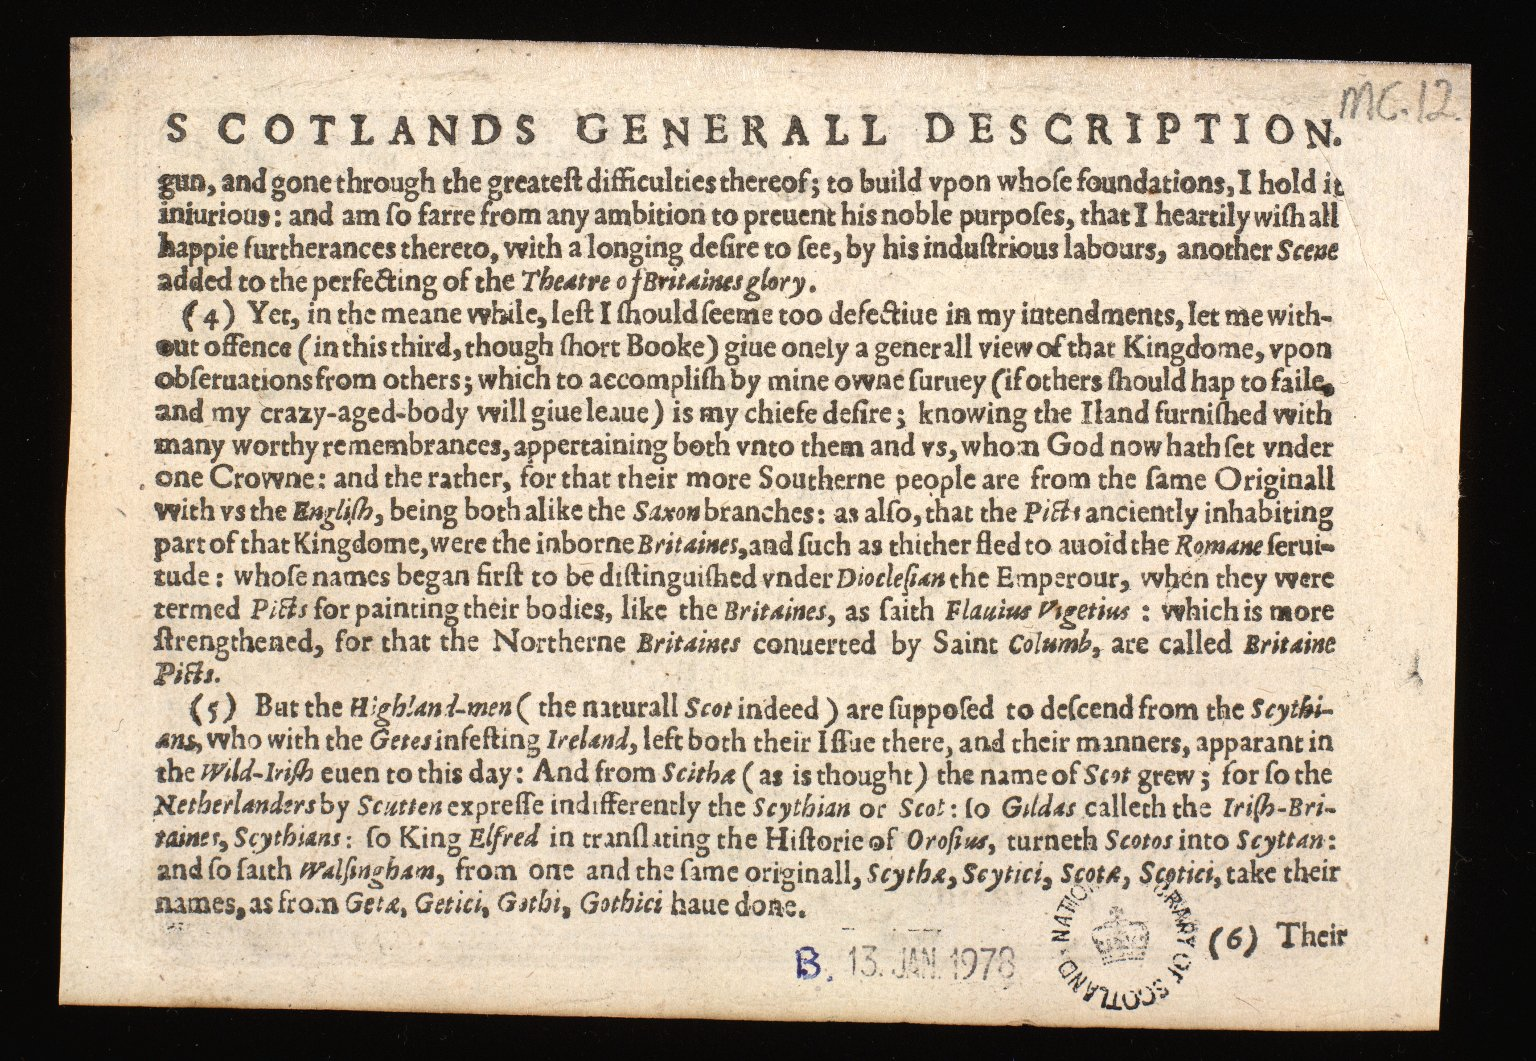 The South pt of Scotlad [sic] wherin are contayned Edinbrough St Andrew and Glasco Archbisho: [2 of 2]